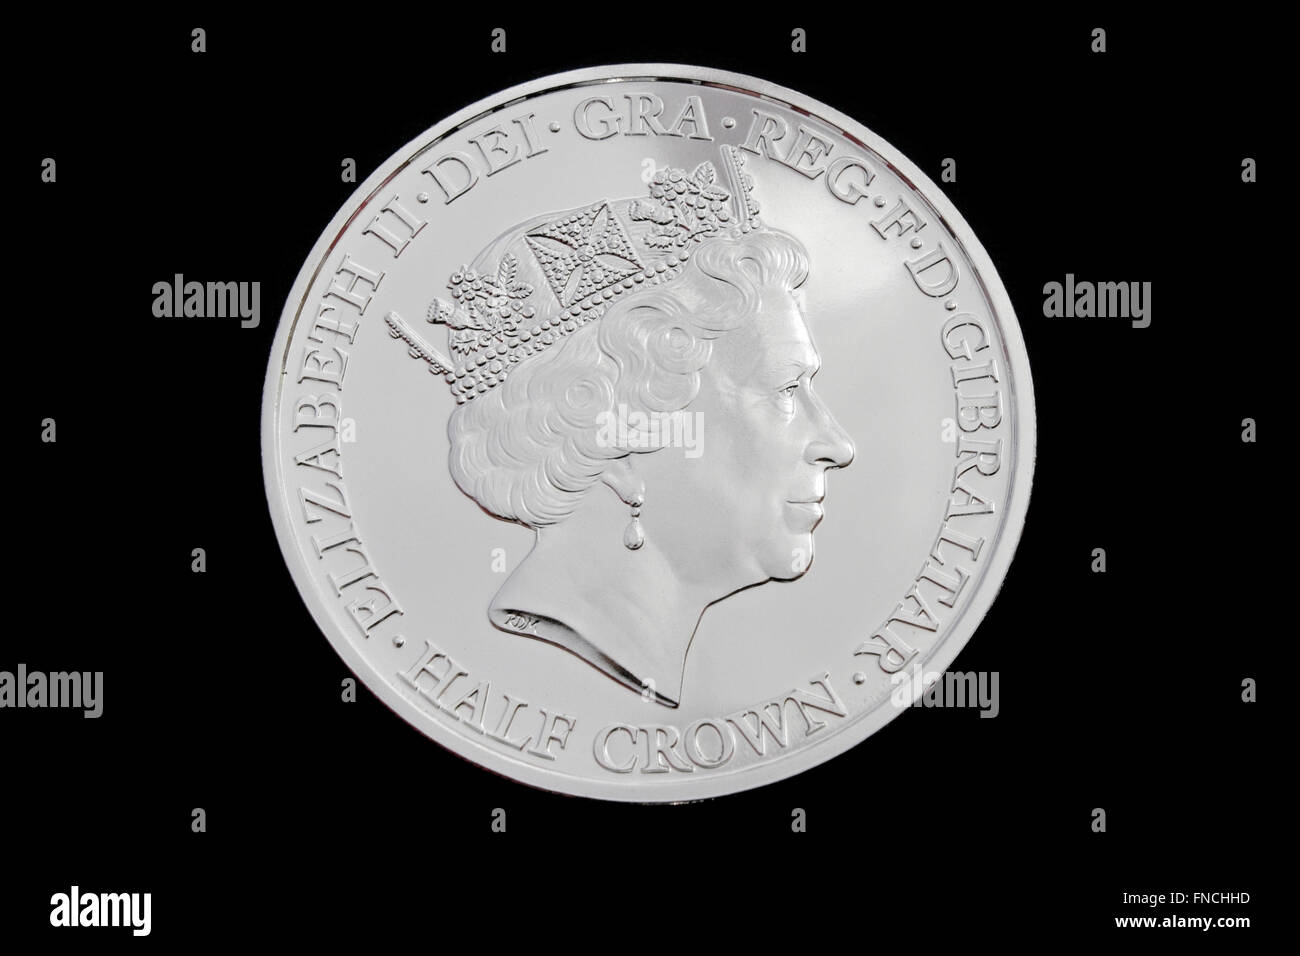 Queen Elizabeth II 90th Birthday commemorative Half Crown coin. - Stock Image